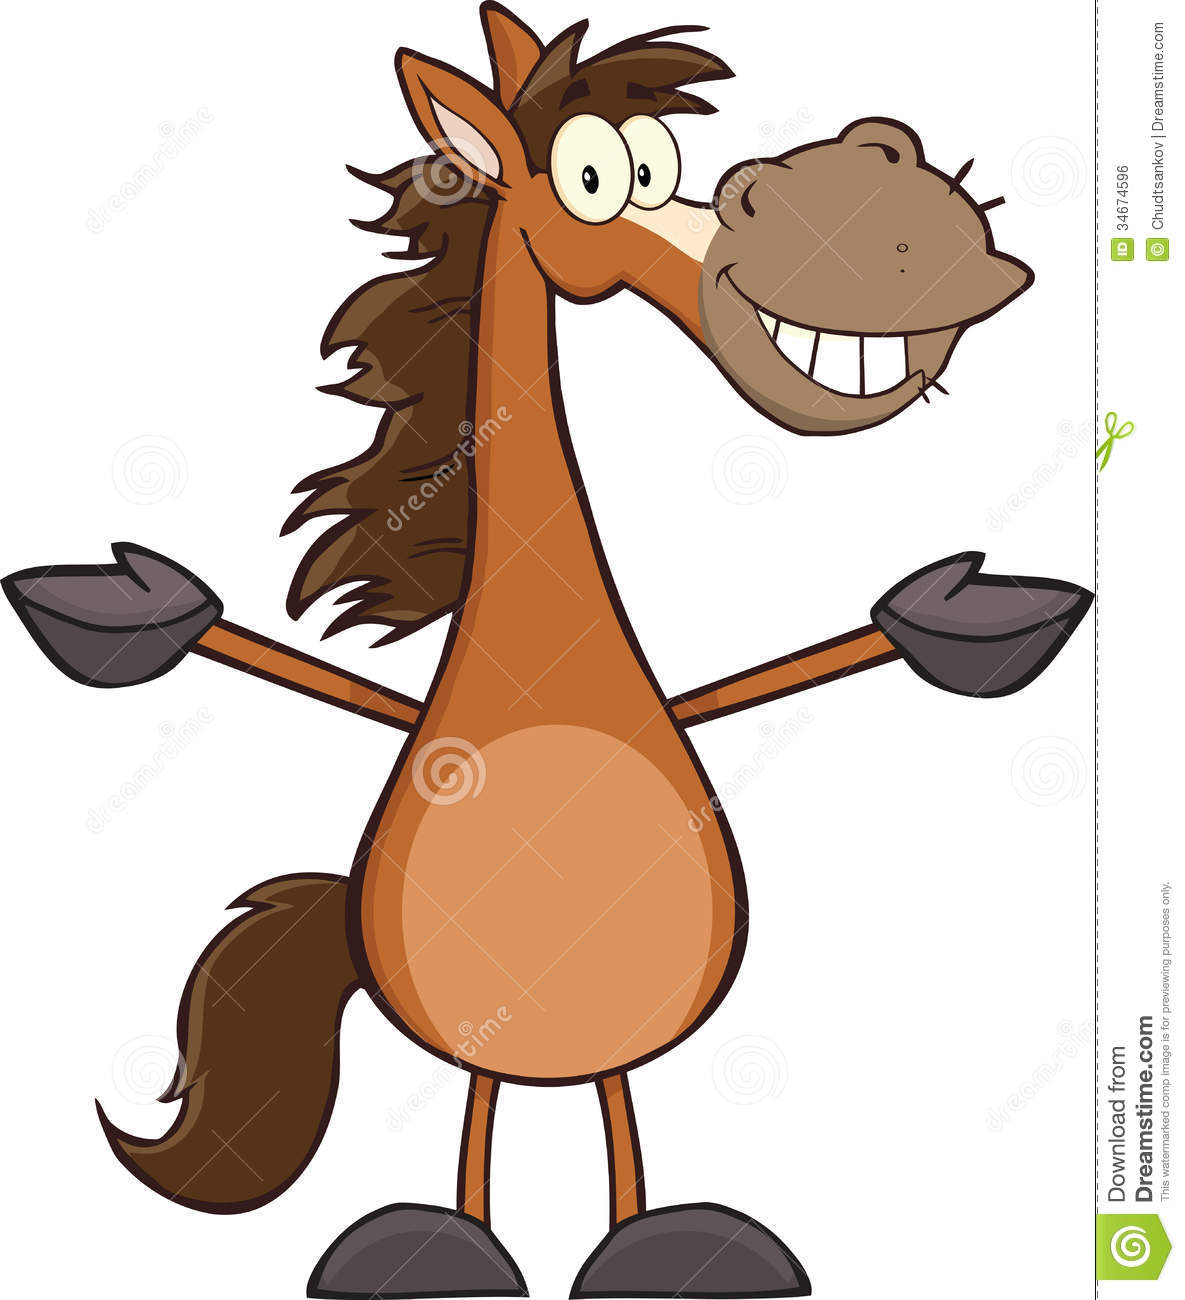 Smiling Horse Stock Illustrations 3 665 Smiling Horse Stock Illustrations Vectors Clipart Dreamstime